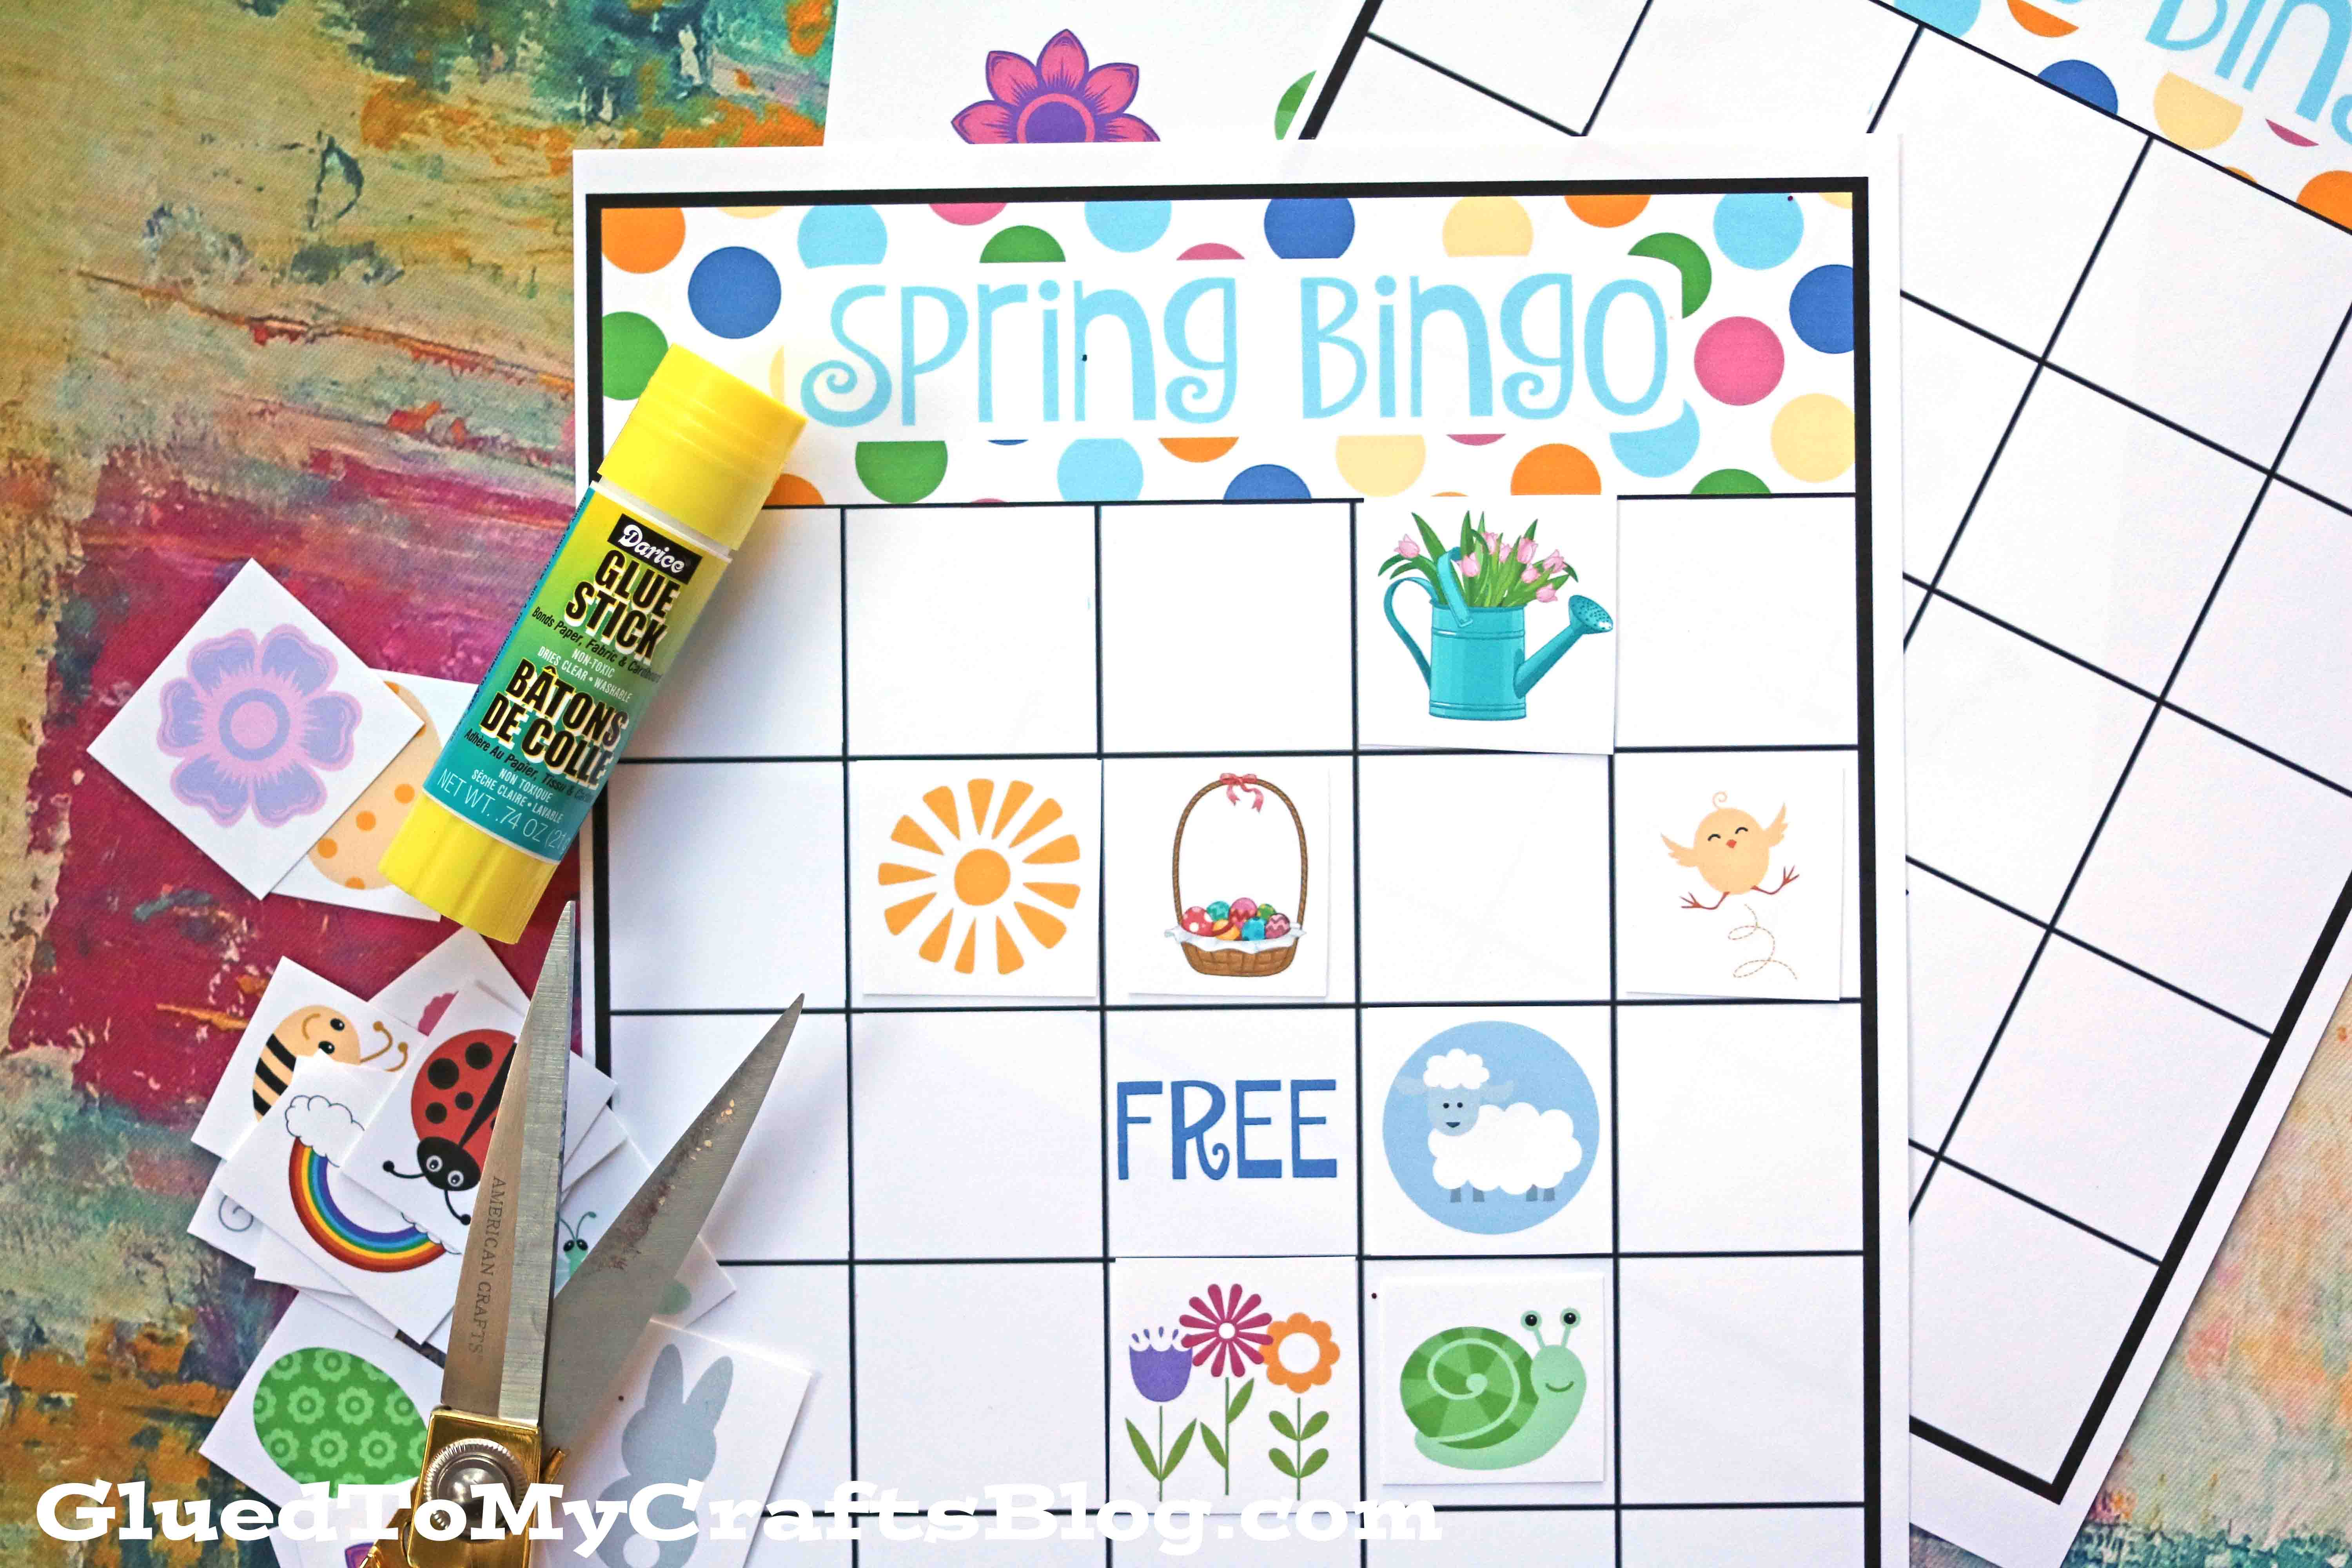 image about Free Printable Easter Bingo Cards known as spring bingo match printable